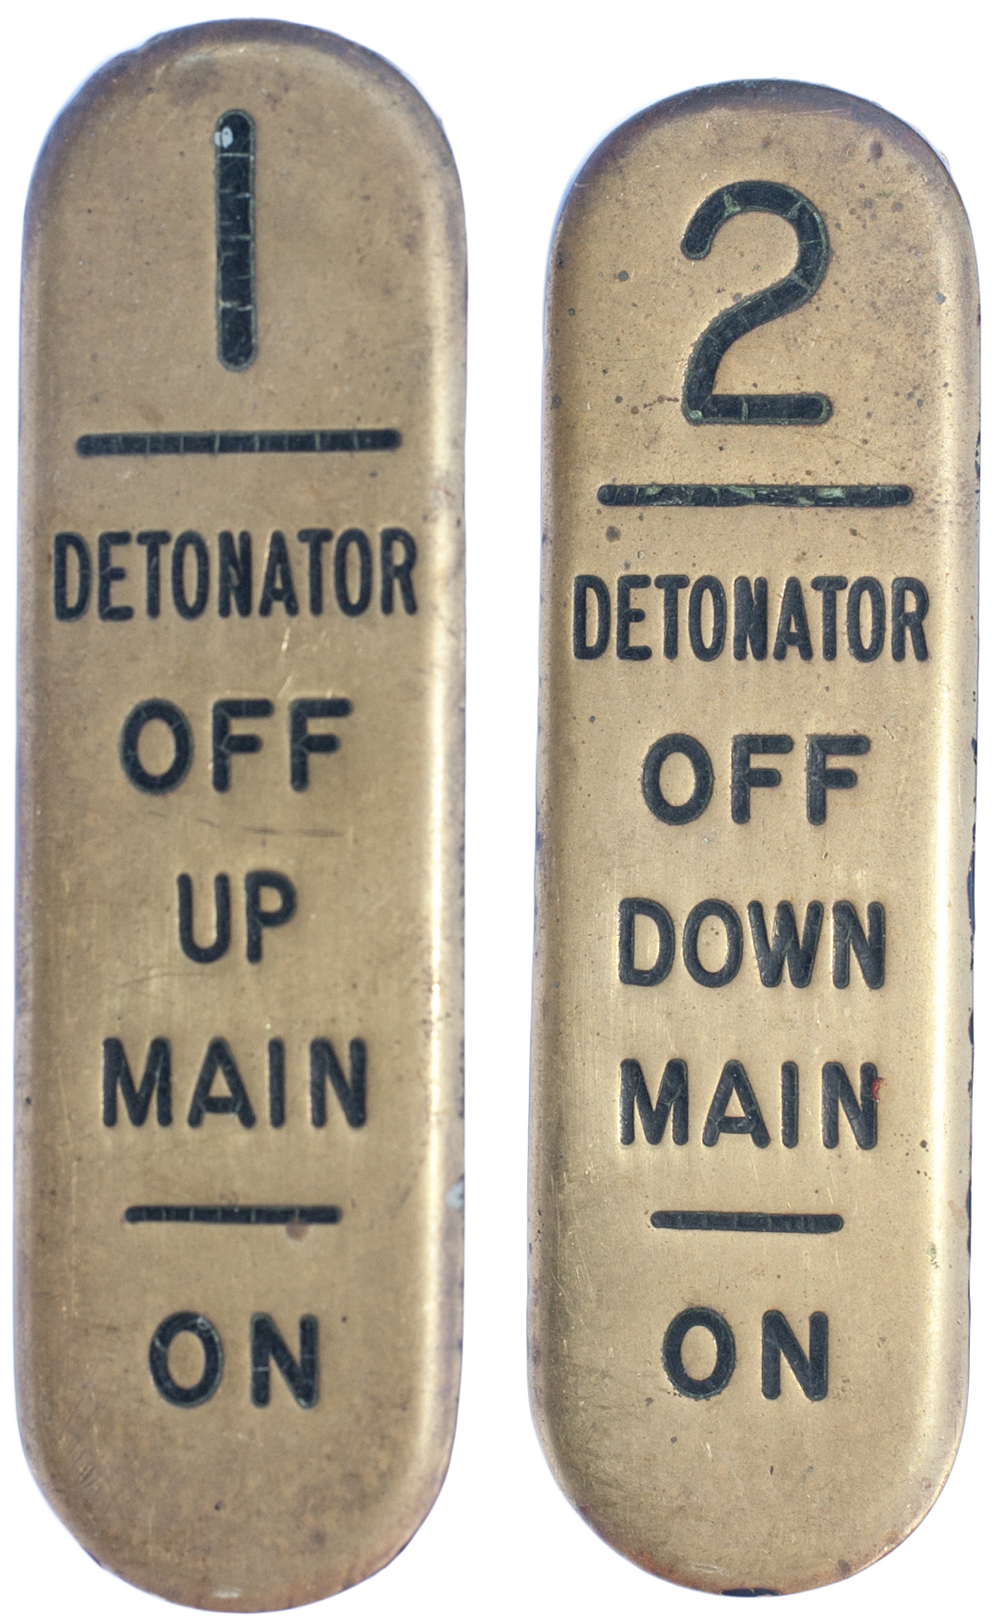 Lot 27 - GWR signal lever leads, a pair; 1 DETONATOR OFF UP MAIN ON, 2 DETONATOR OFF DOWN MAIN ON. These